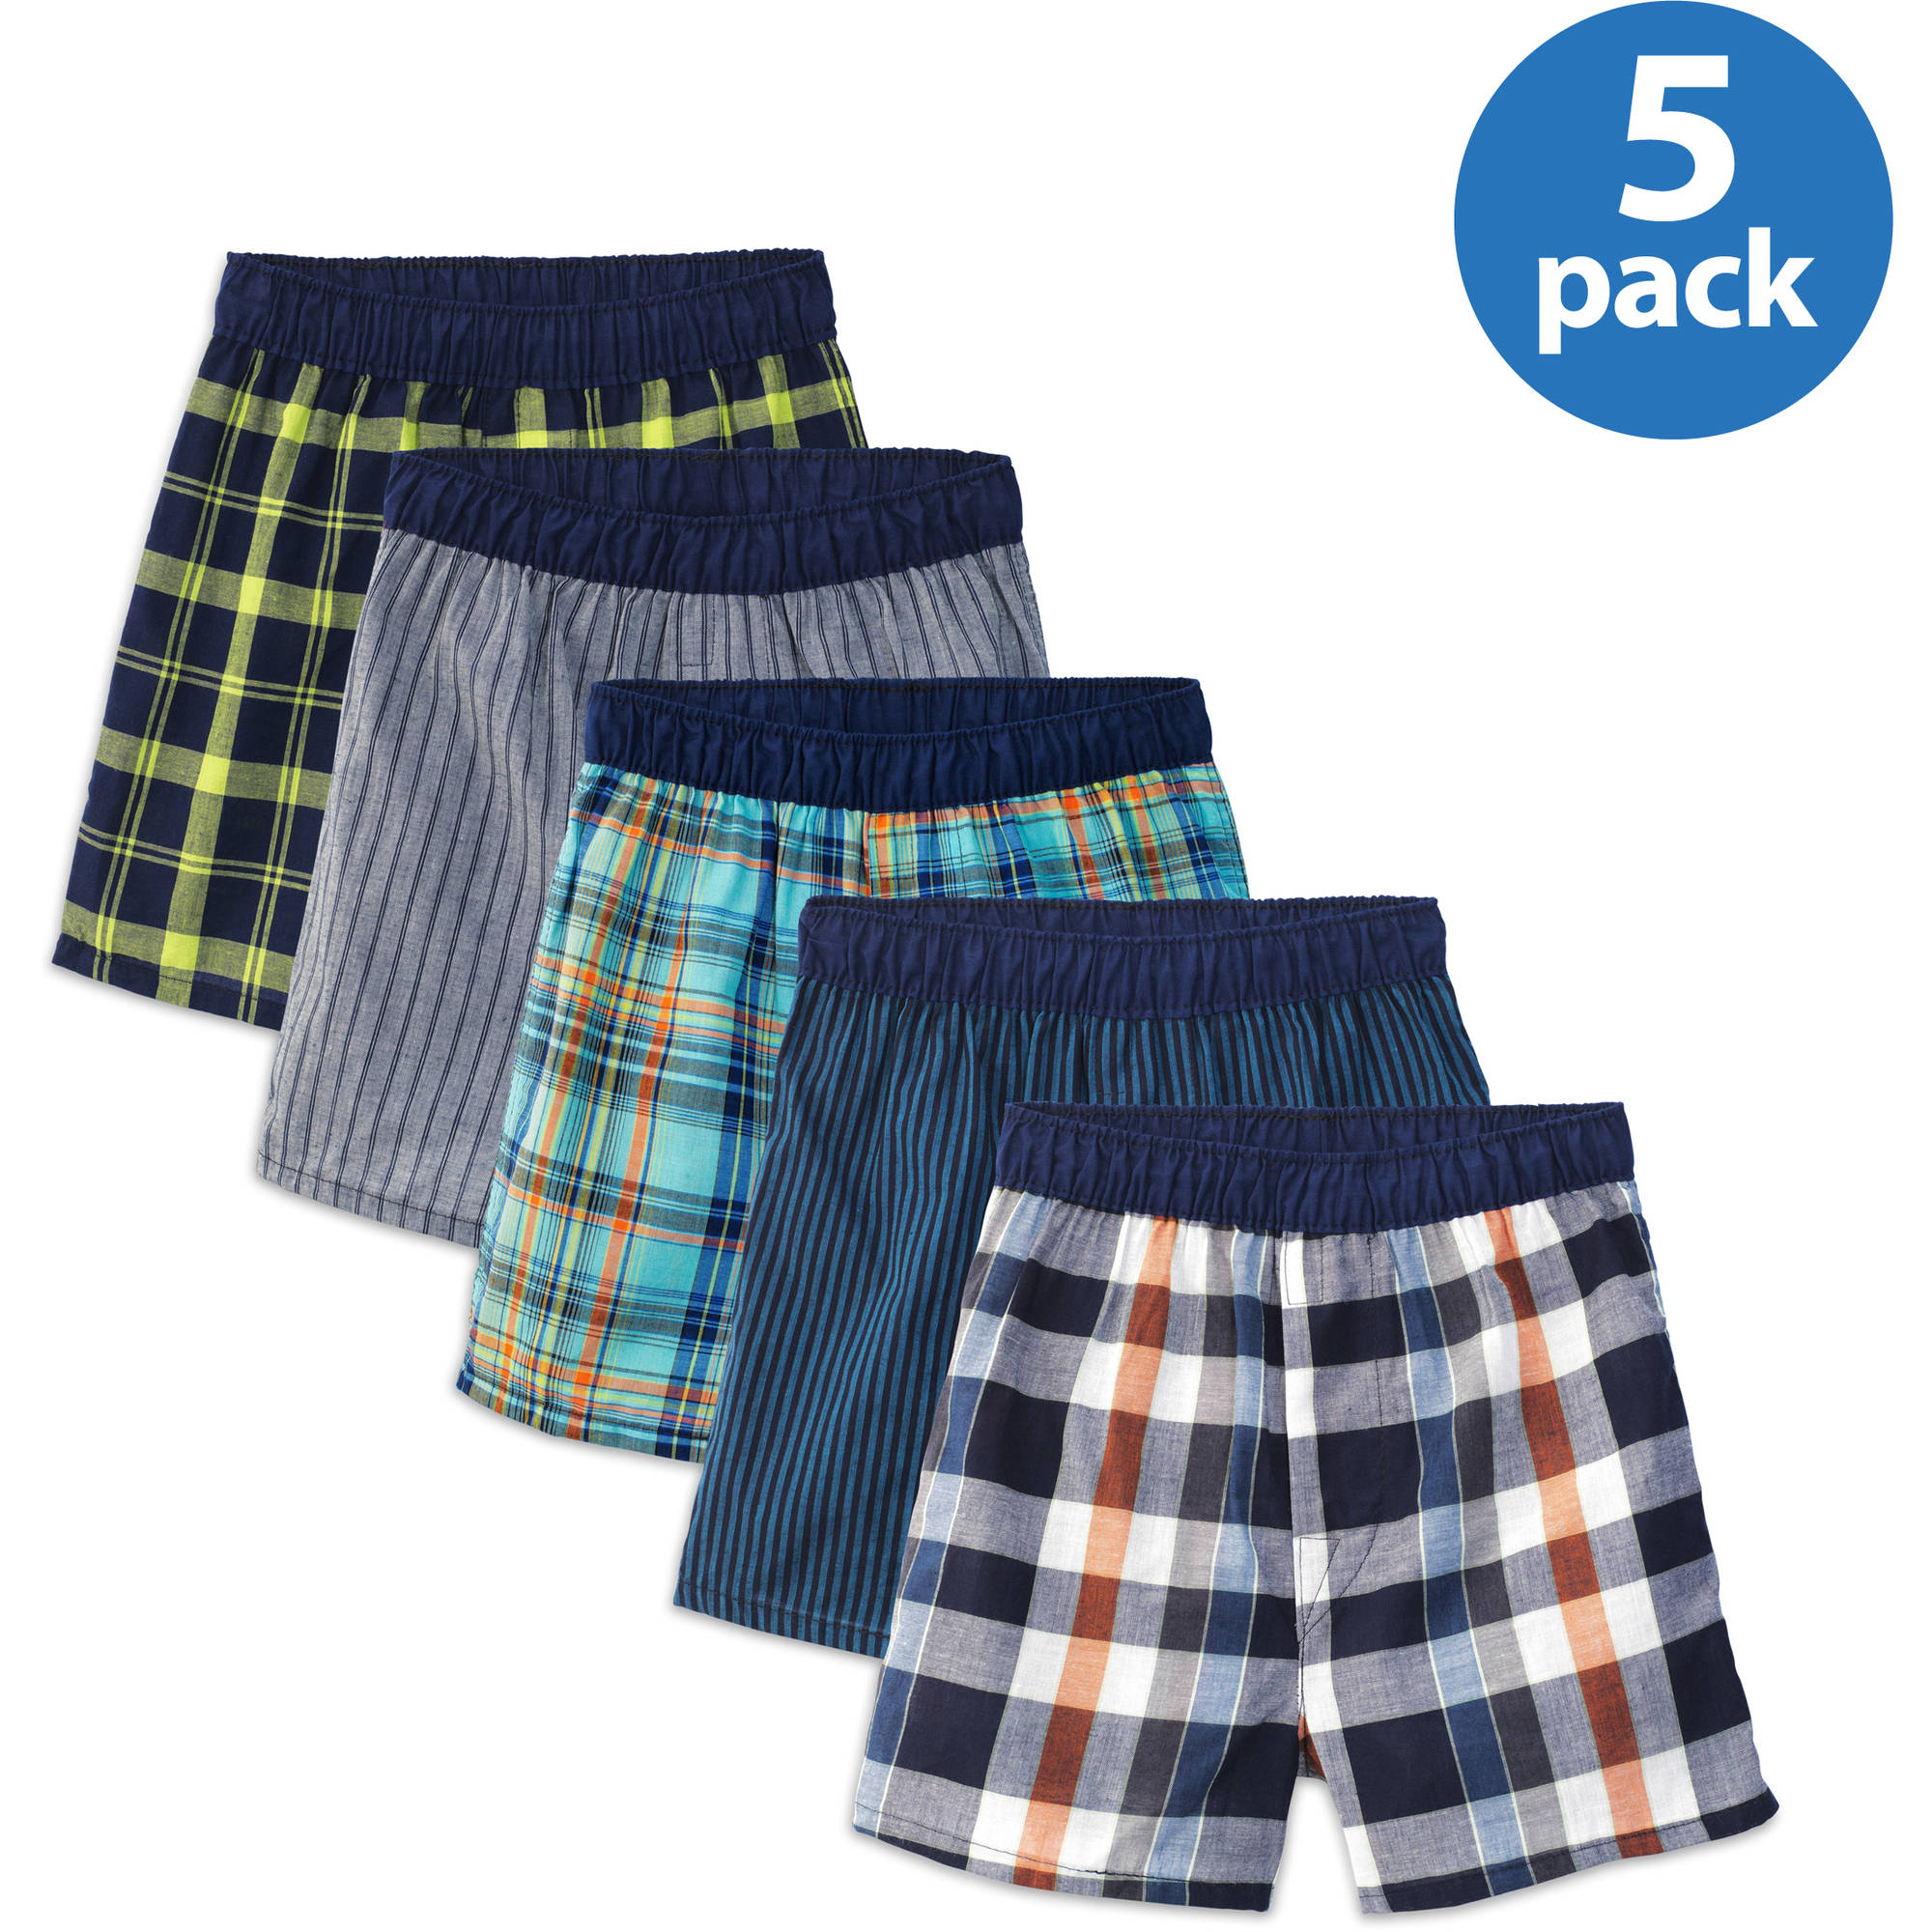 Fruit of the Loom Boys' 5 Pack Covered Waistband Boxer